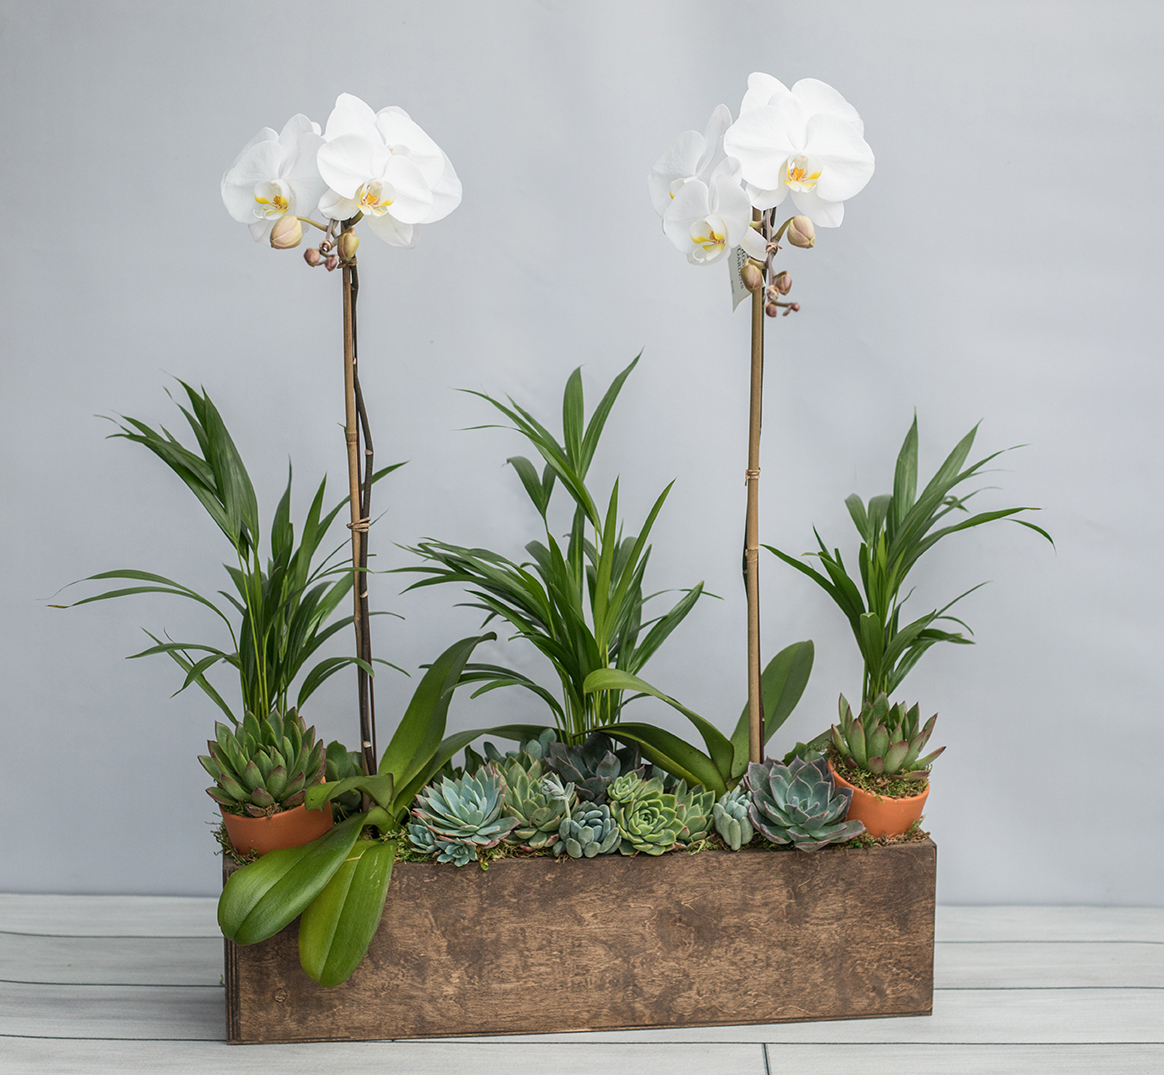 An image of two white orchids and succulents in a wooden box